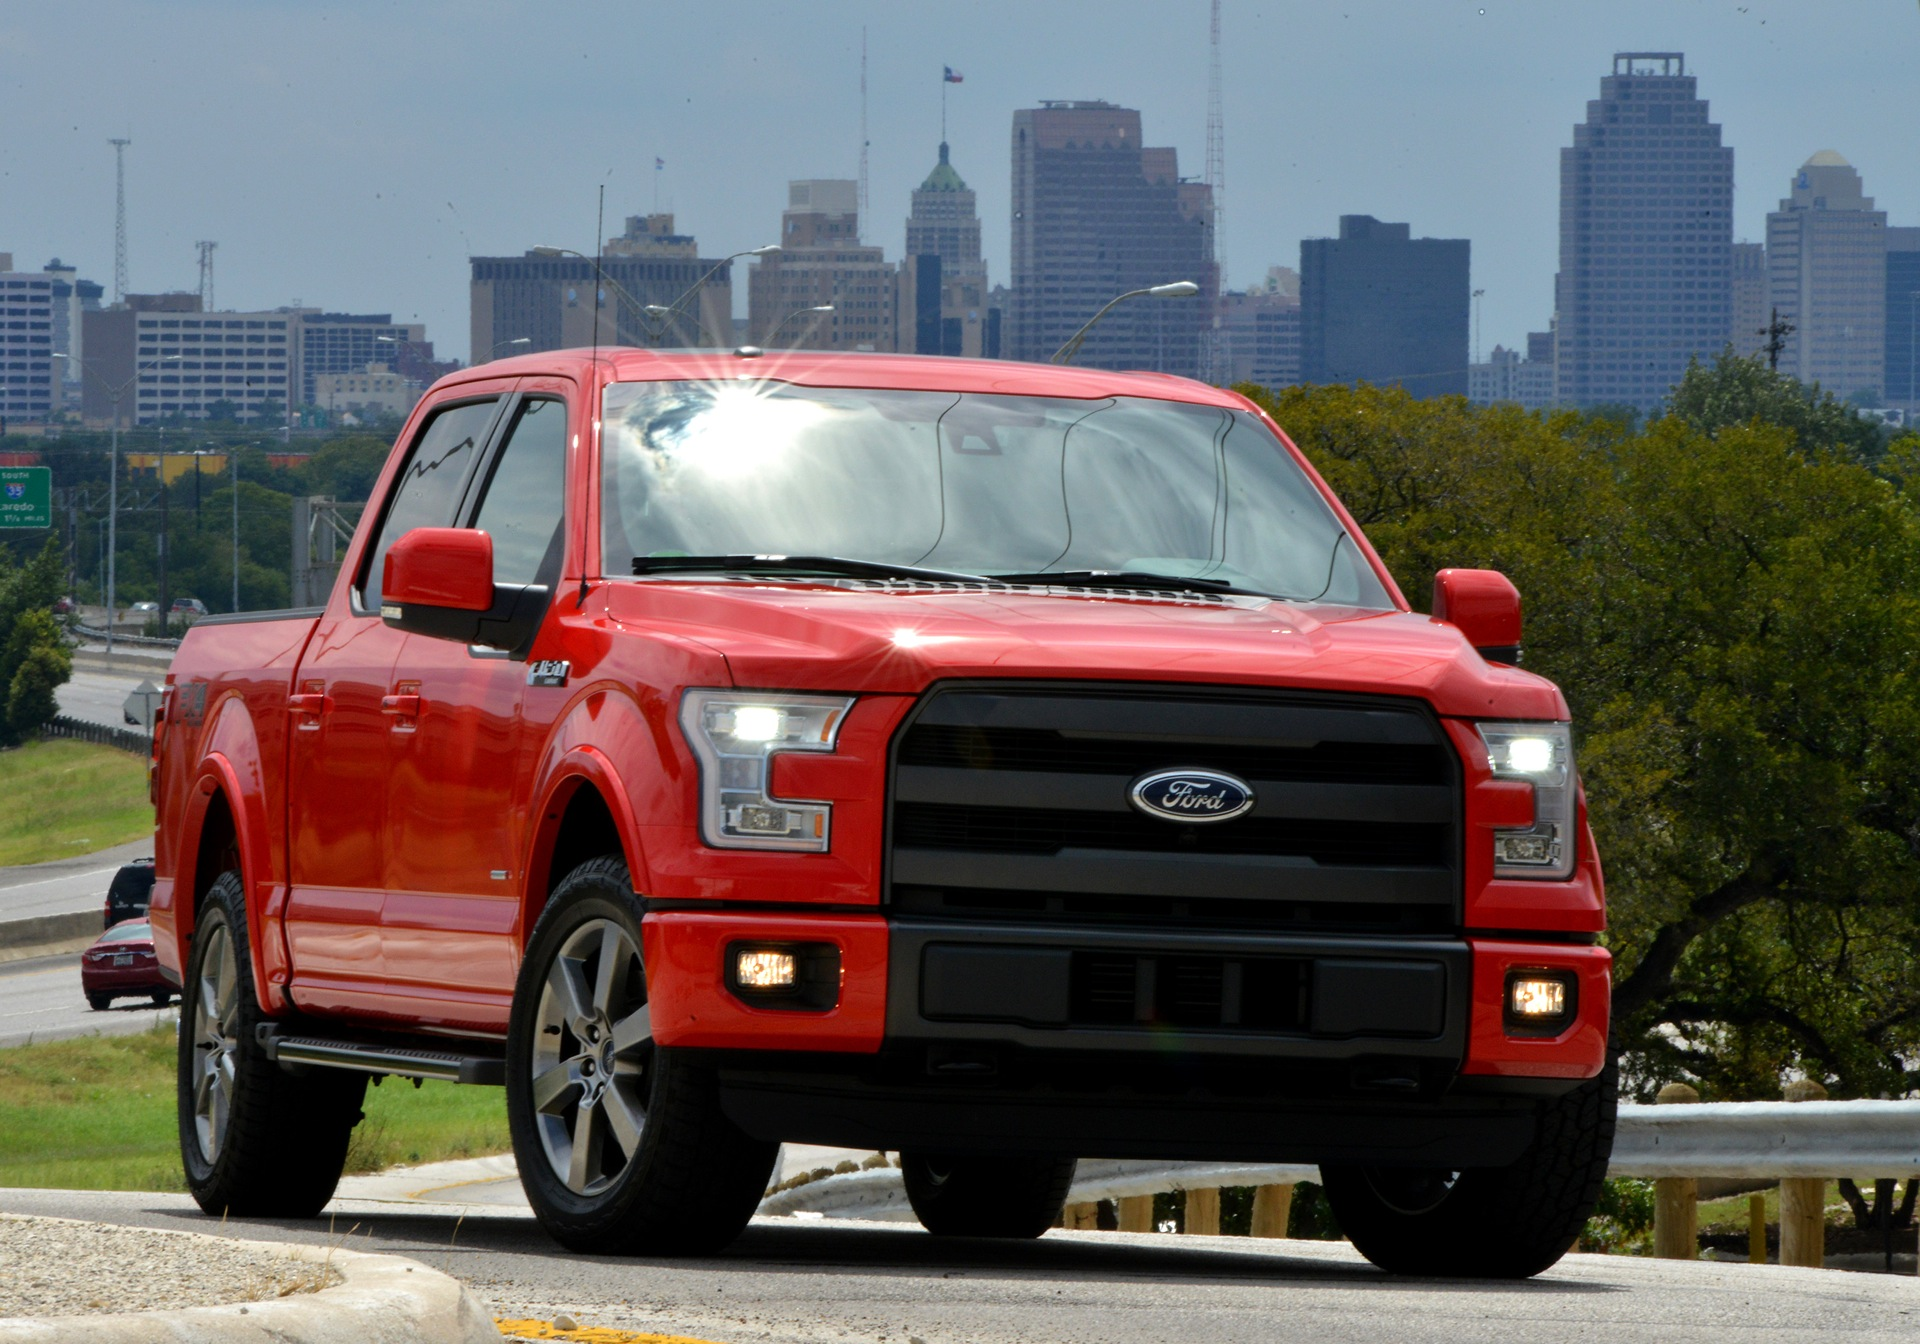 Ford F-150 Hybrid Pickup Truck By 2020 Reconfirmed, But ...